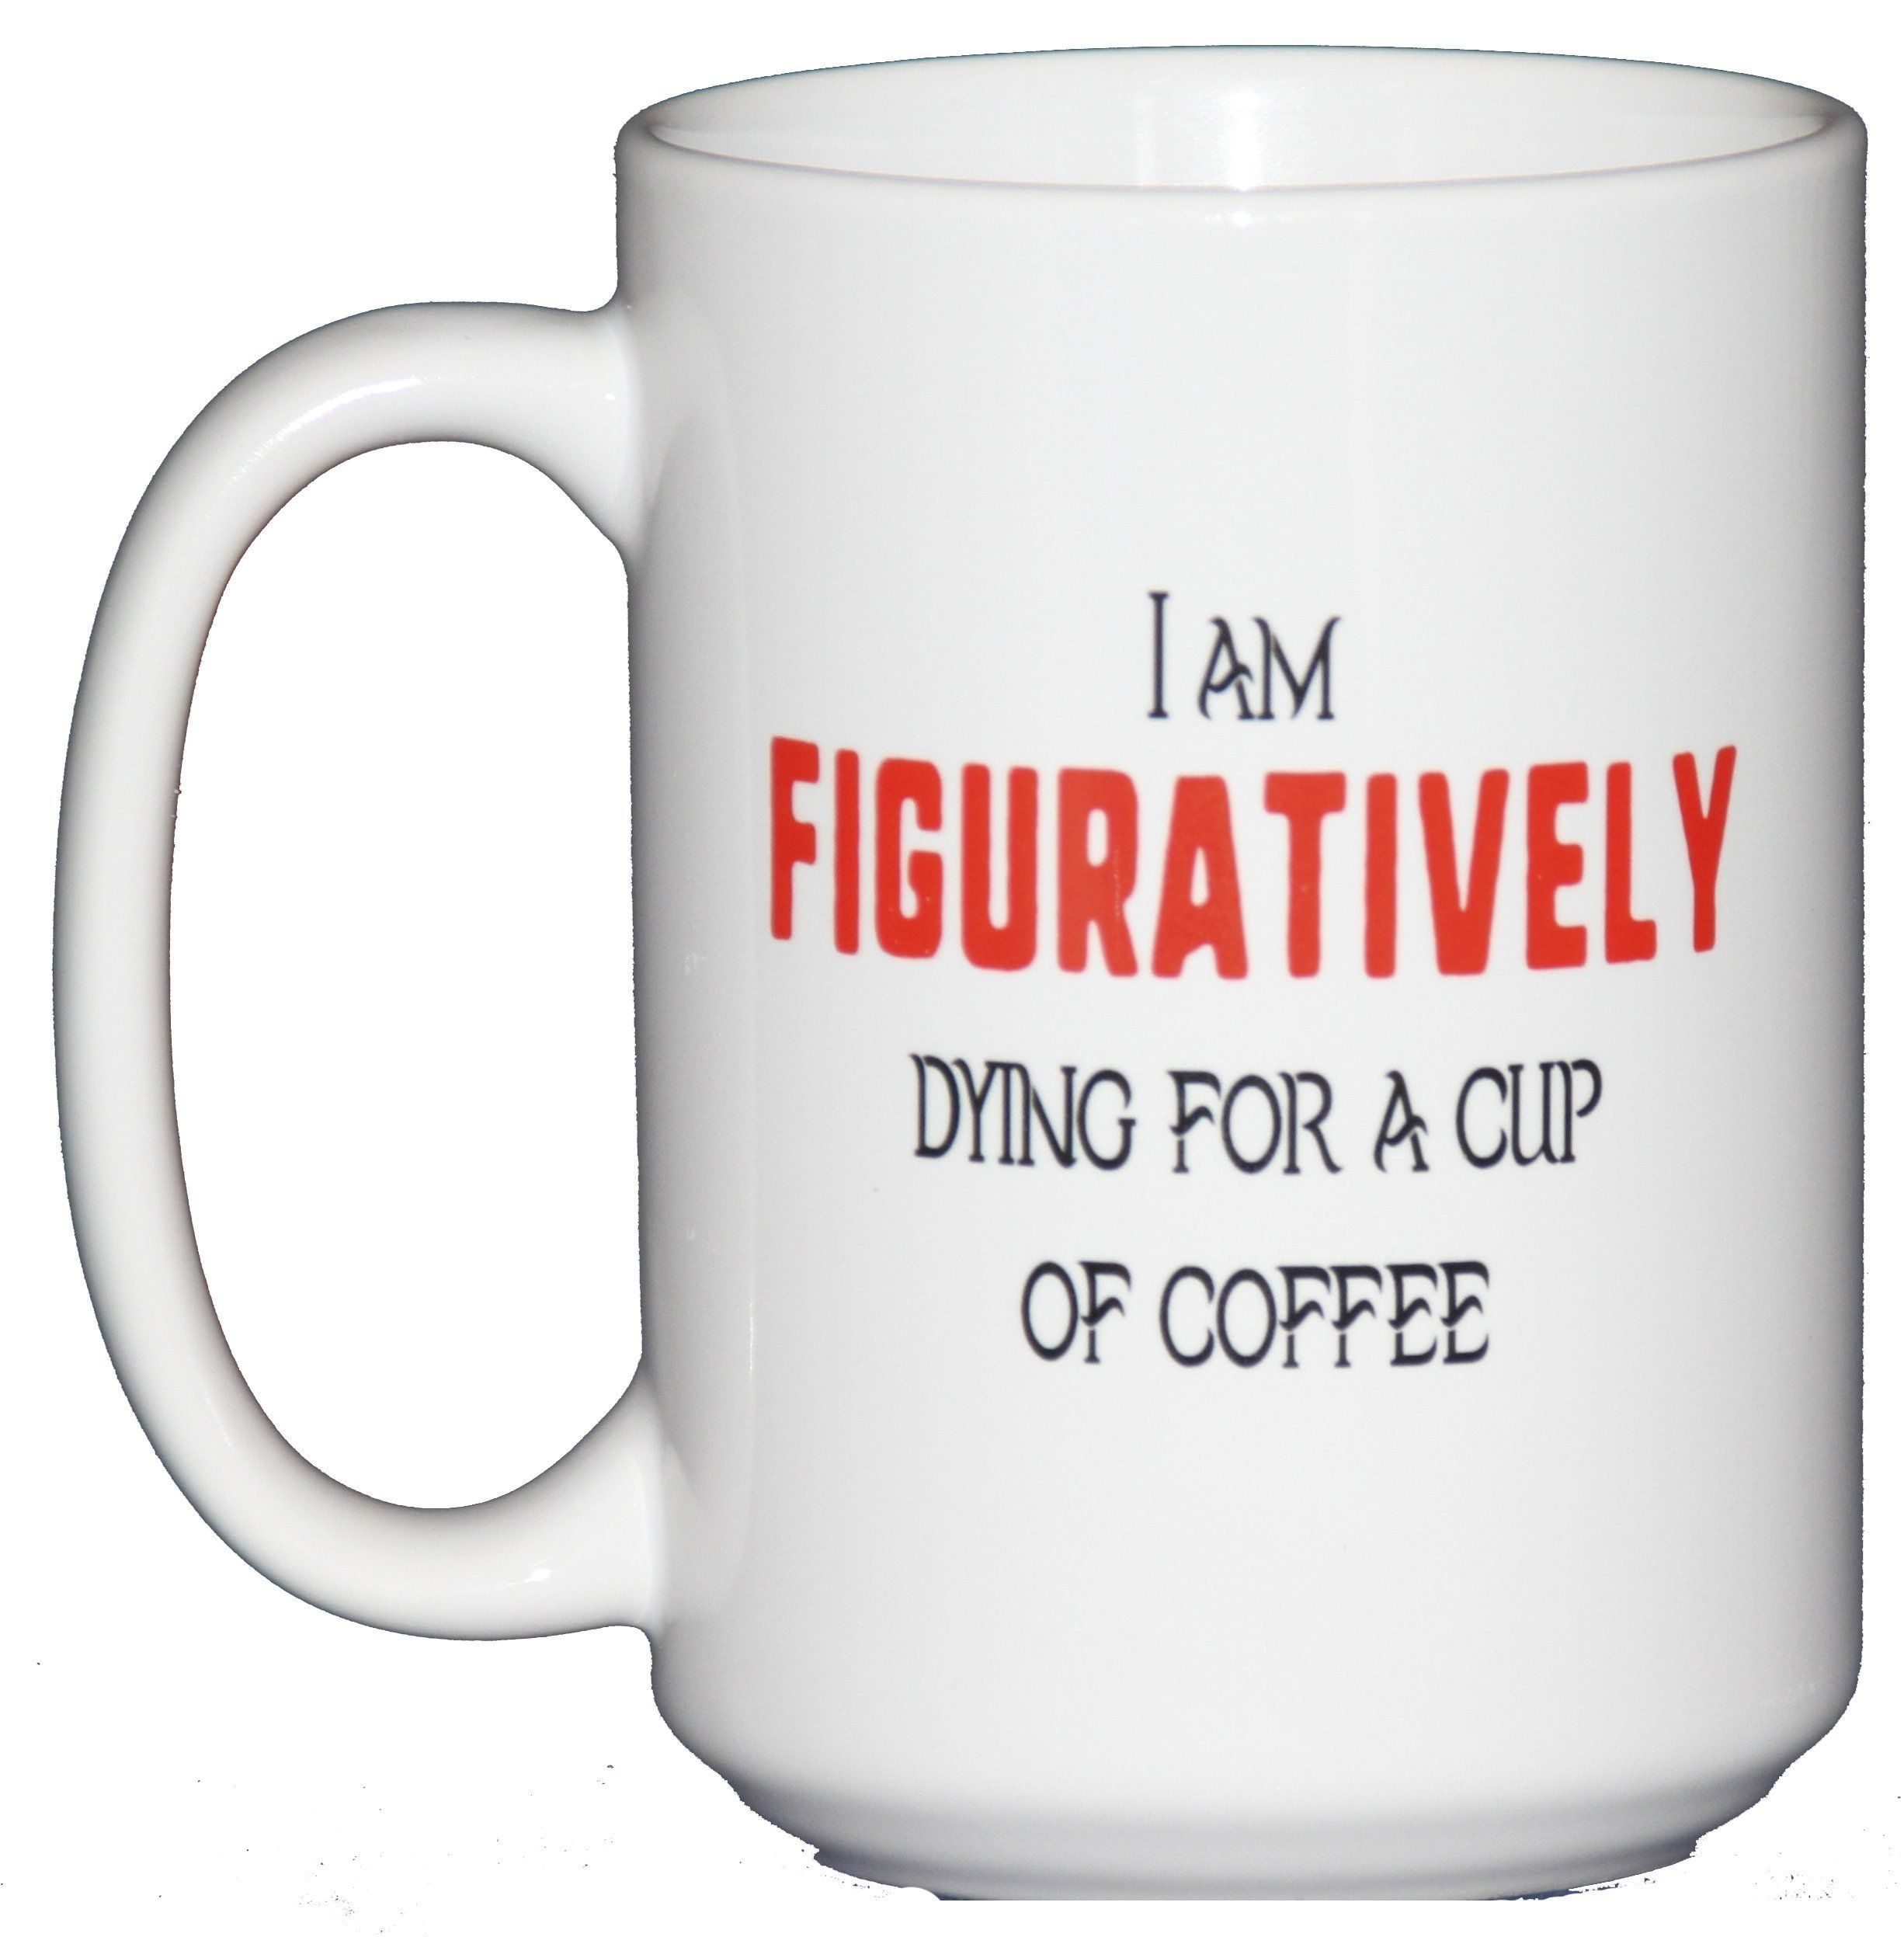 15oz I am figuratively dying for a cup of coffee Mug 15 oz white